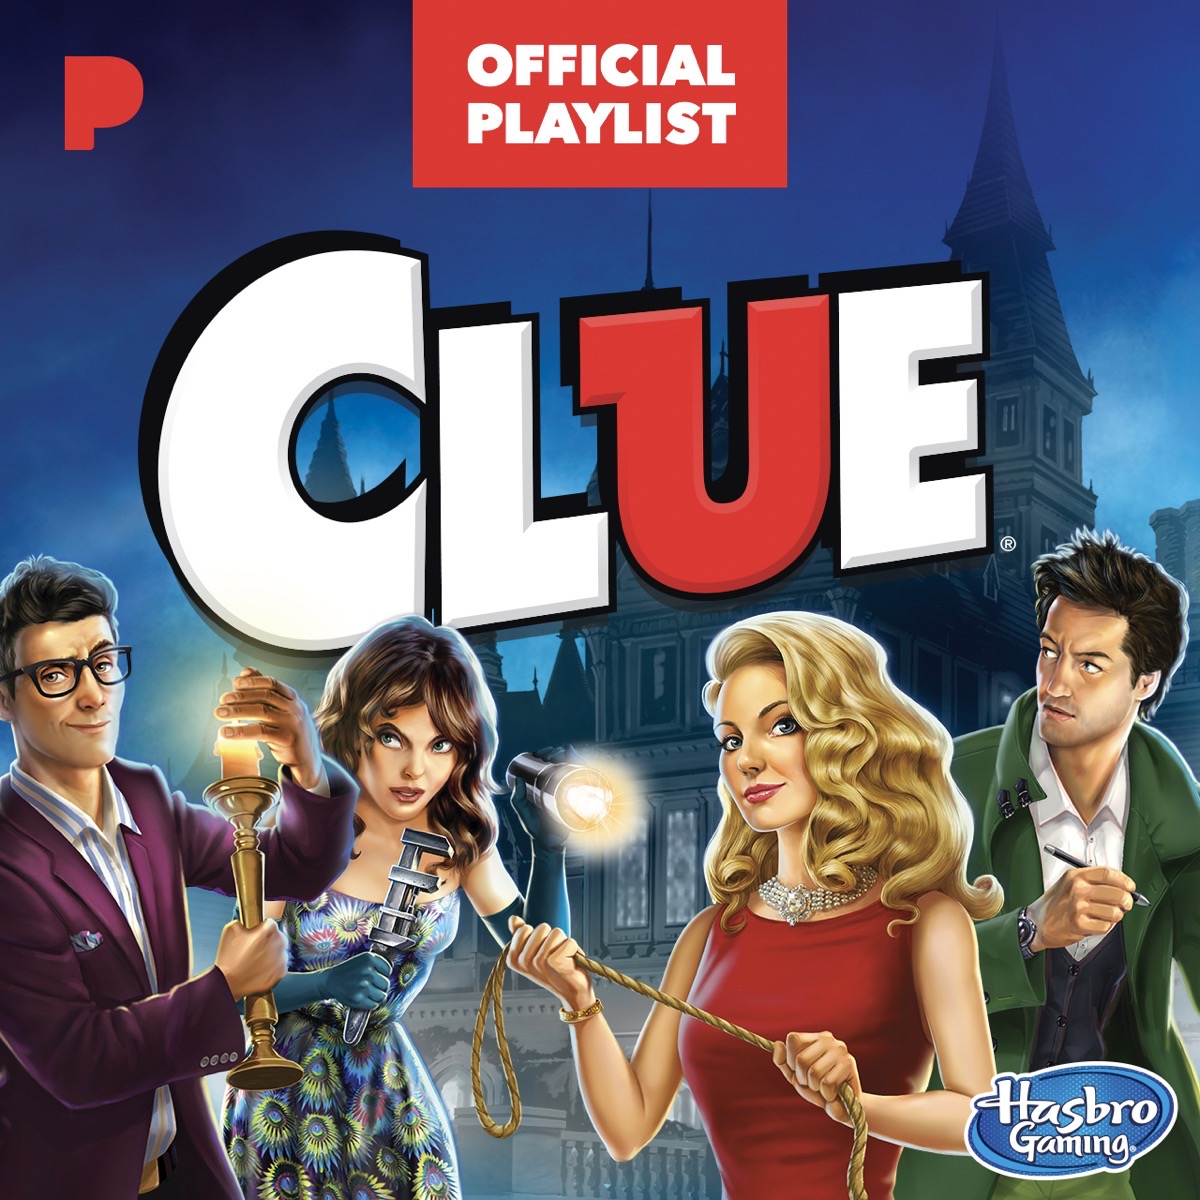 Clue game characters